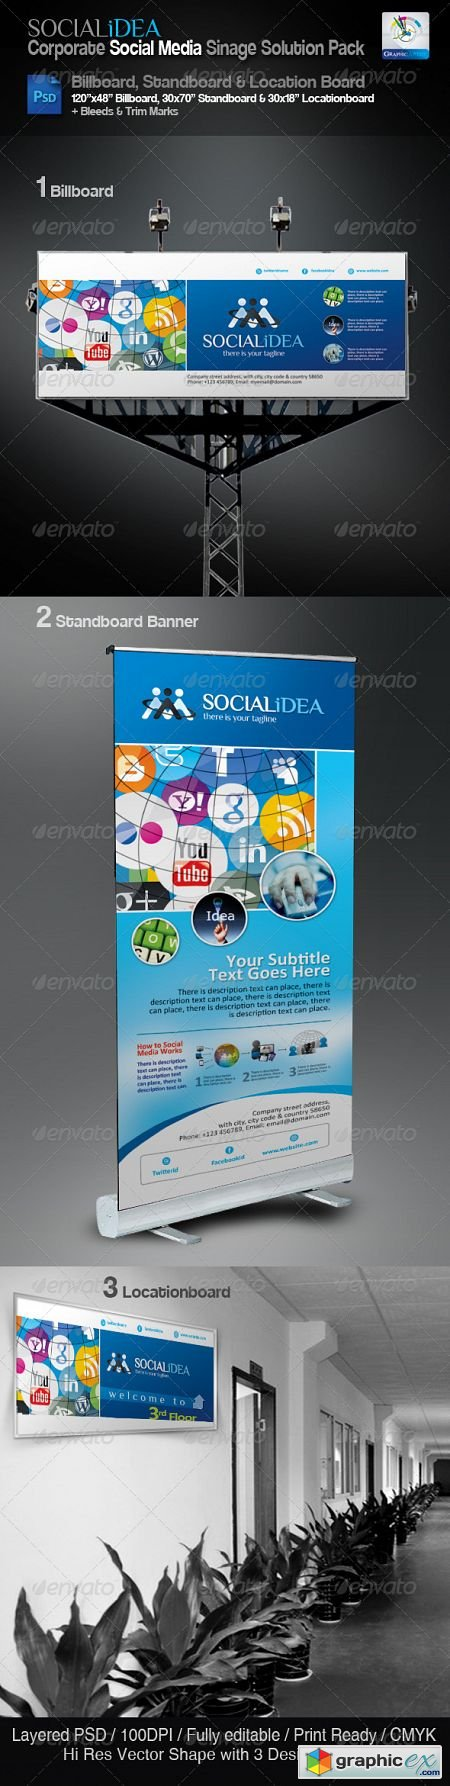 Socialidea Corporate Sinage Solution Pack